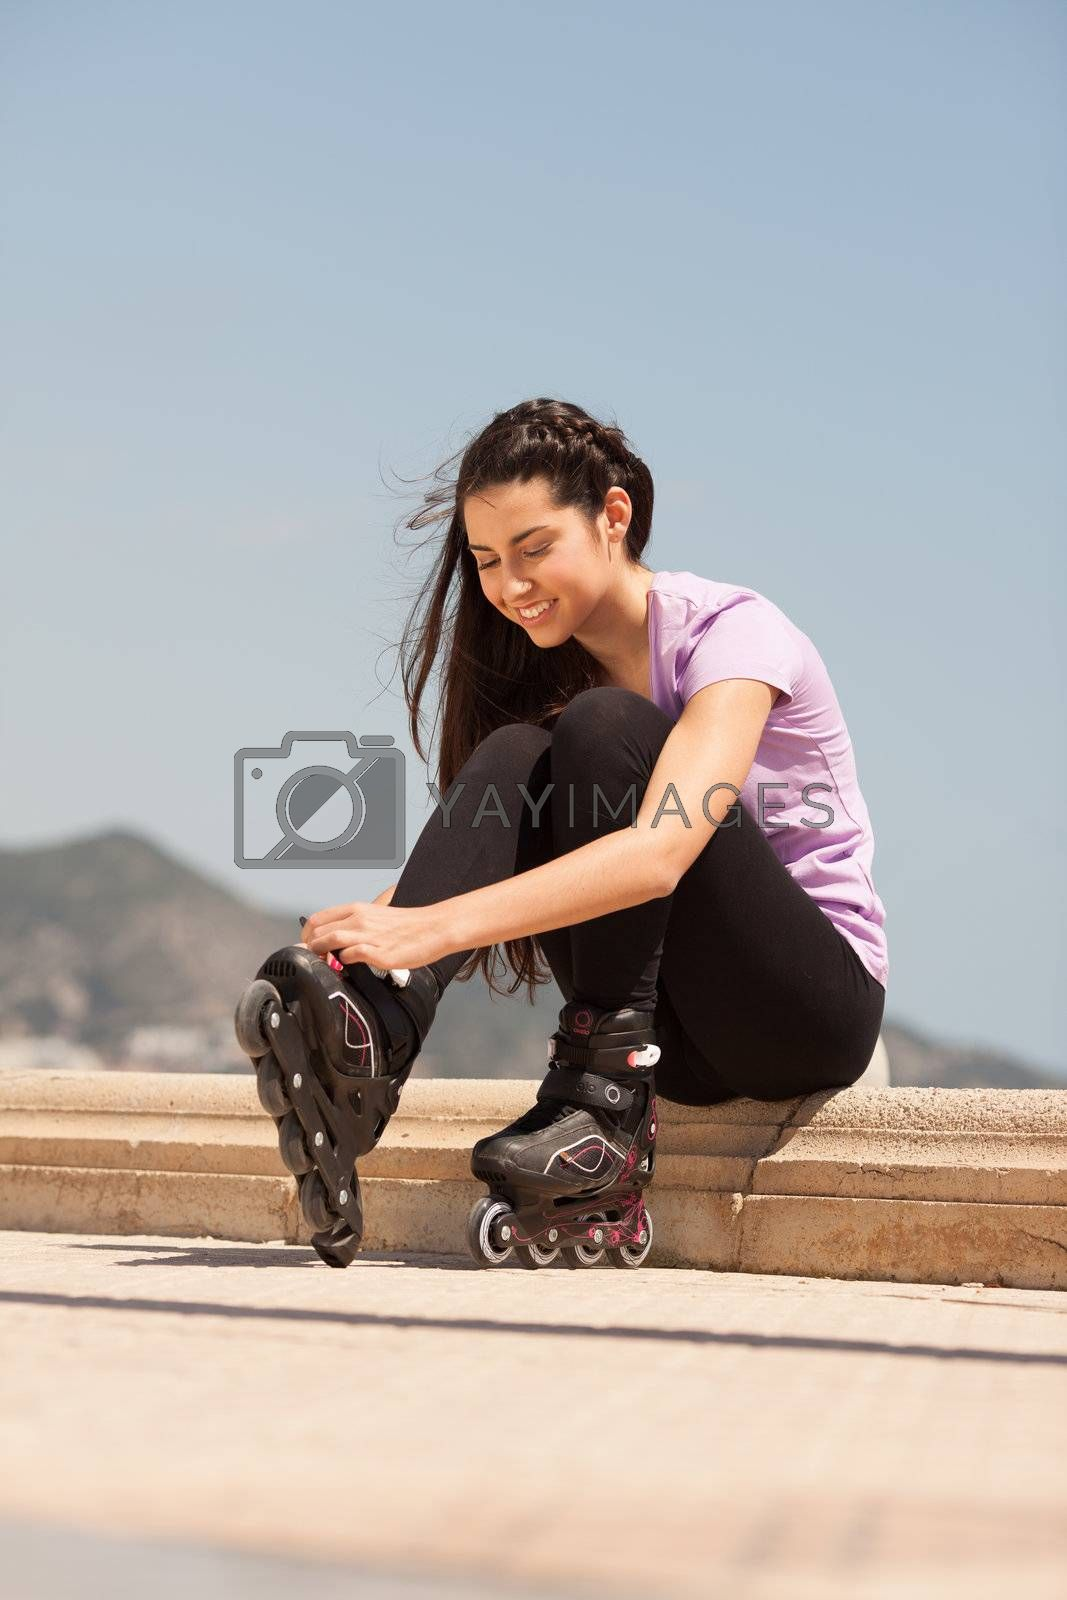 Girl going rollerblading sitting putting on inline skates outdoors